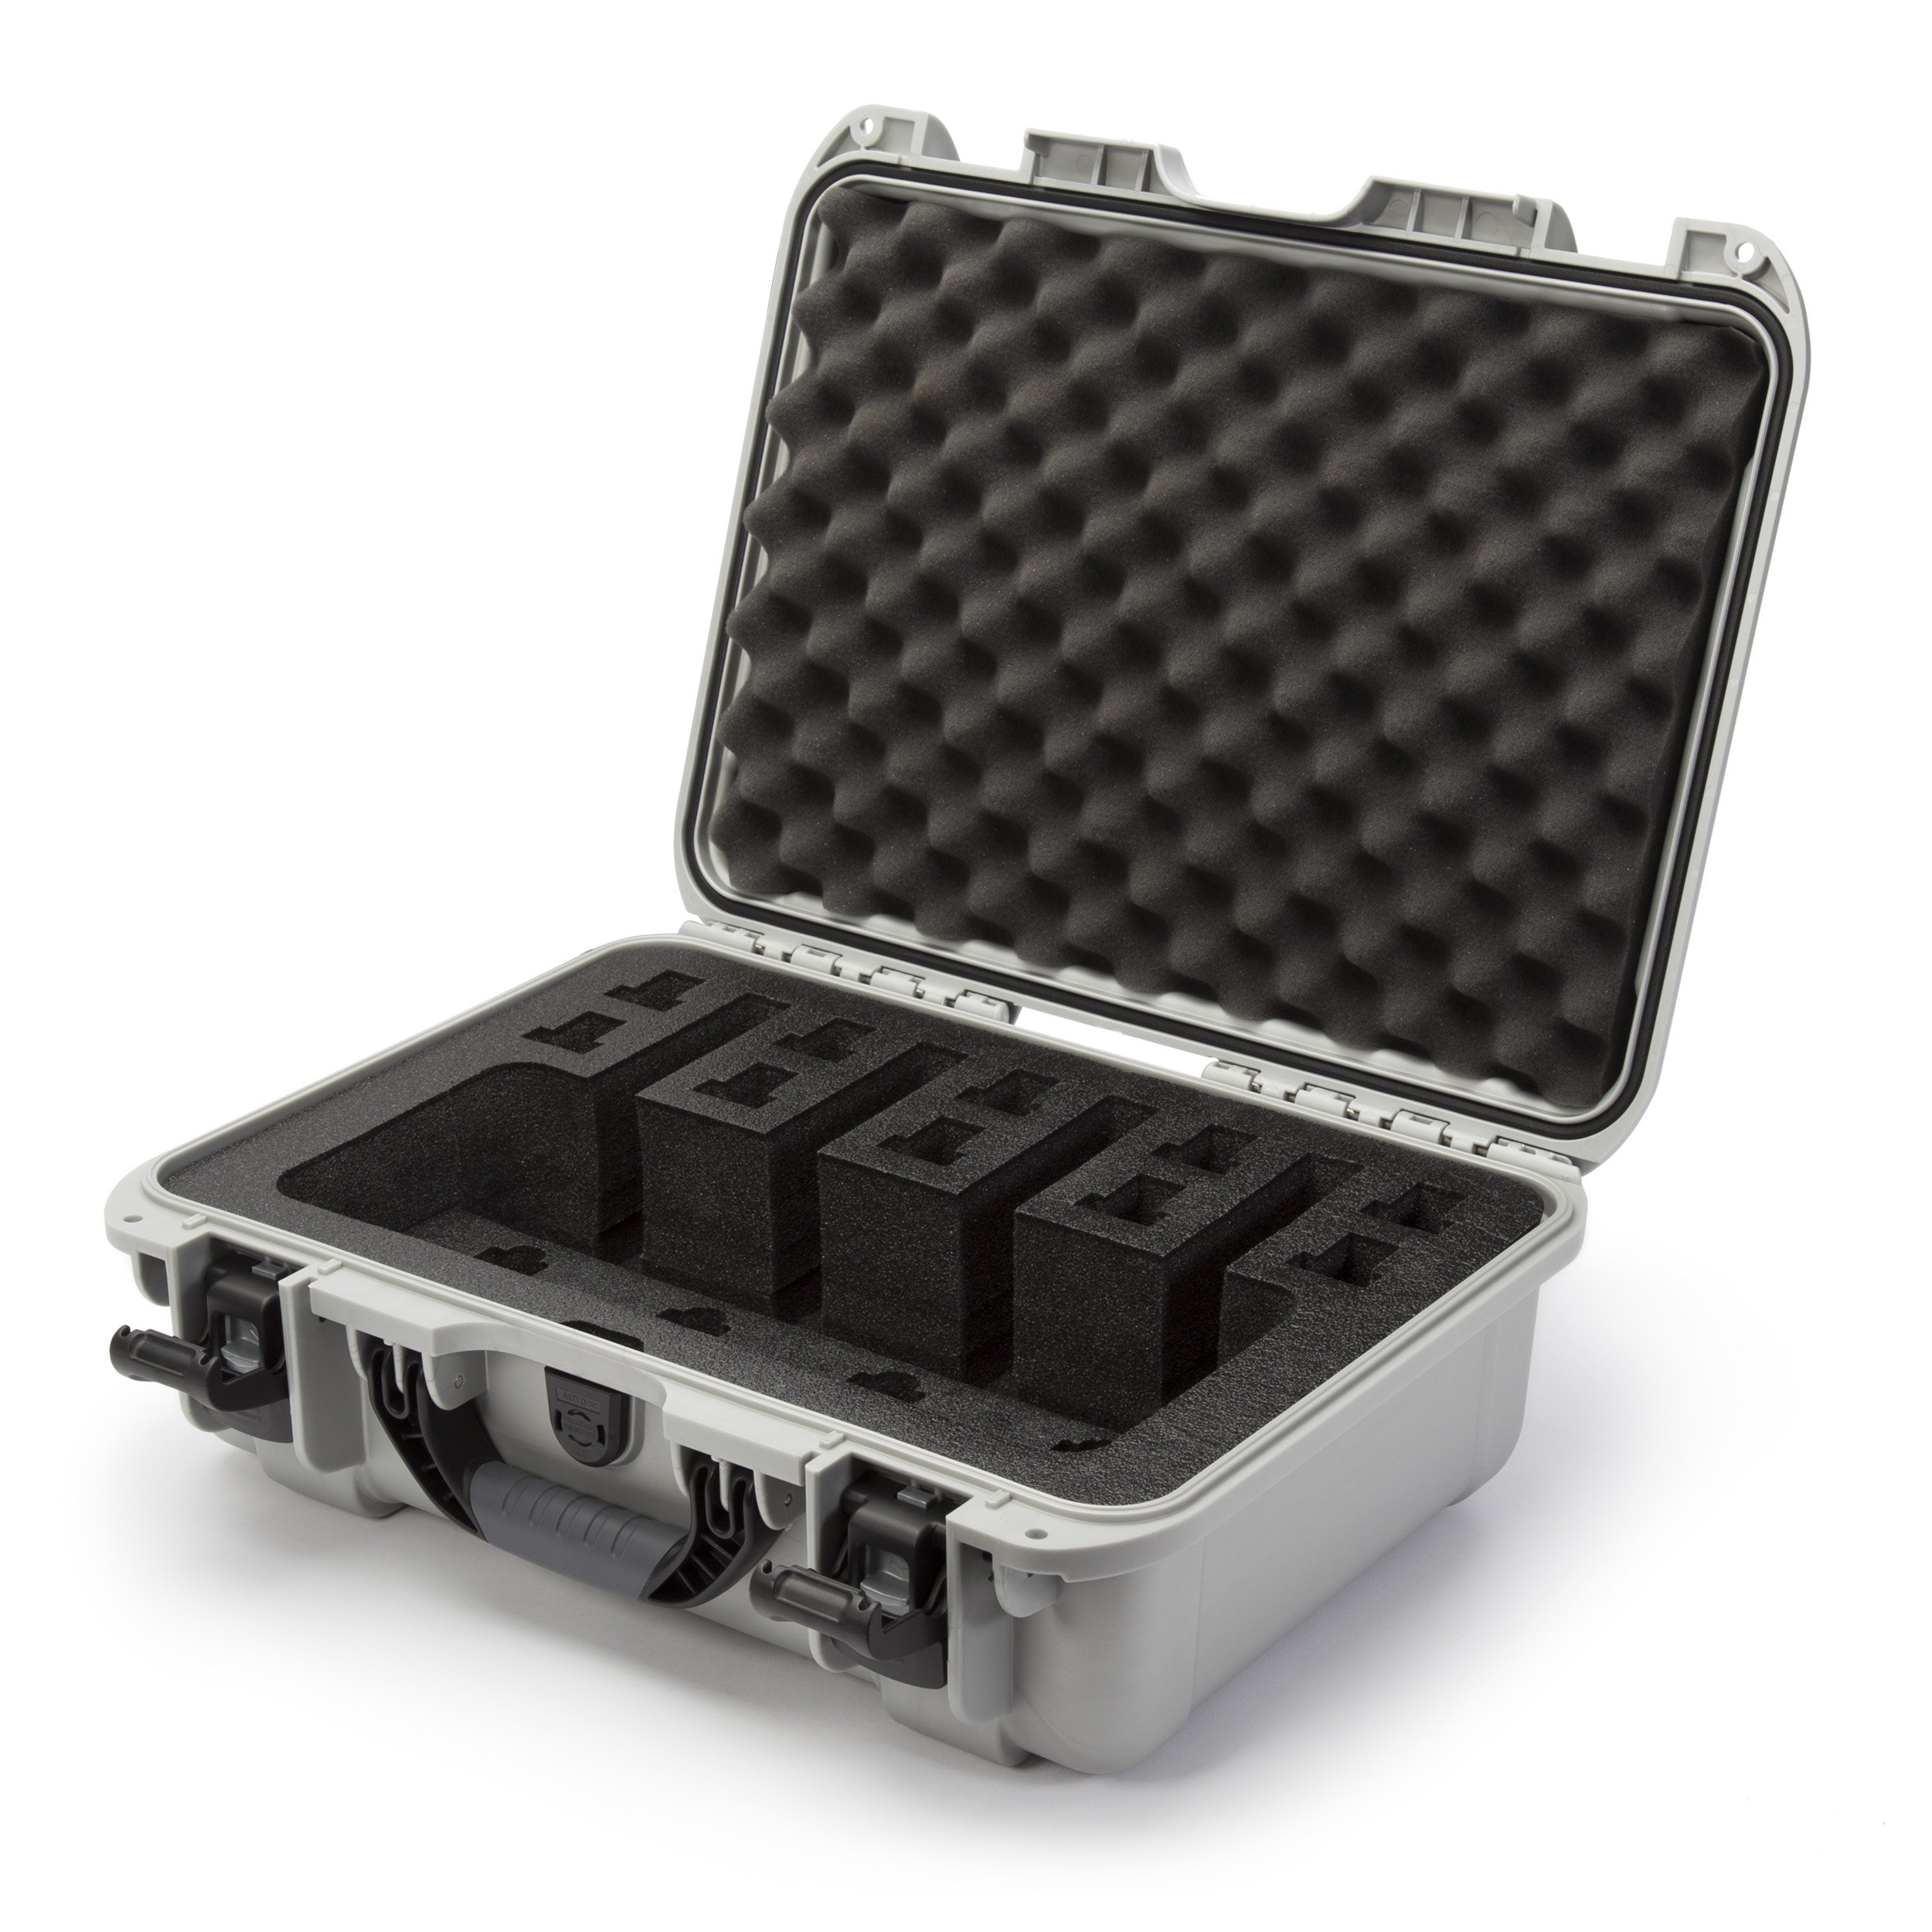 Nanuk 925 Waterproof Professional Gun Case, Military Approved with Custom Foam Insert for 4UP - Silver by Nanuk